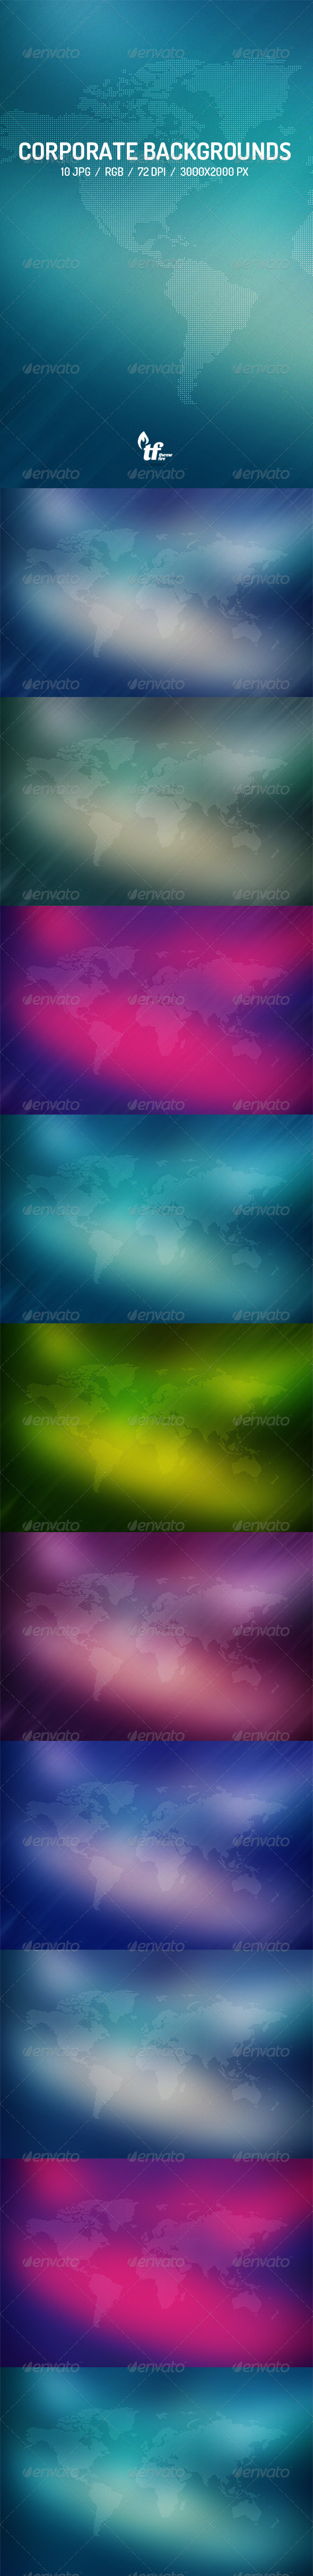 GraphicRiver 10 Corporate Business Backgrounds 7505694